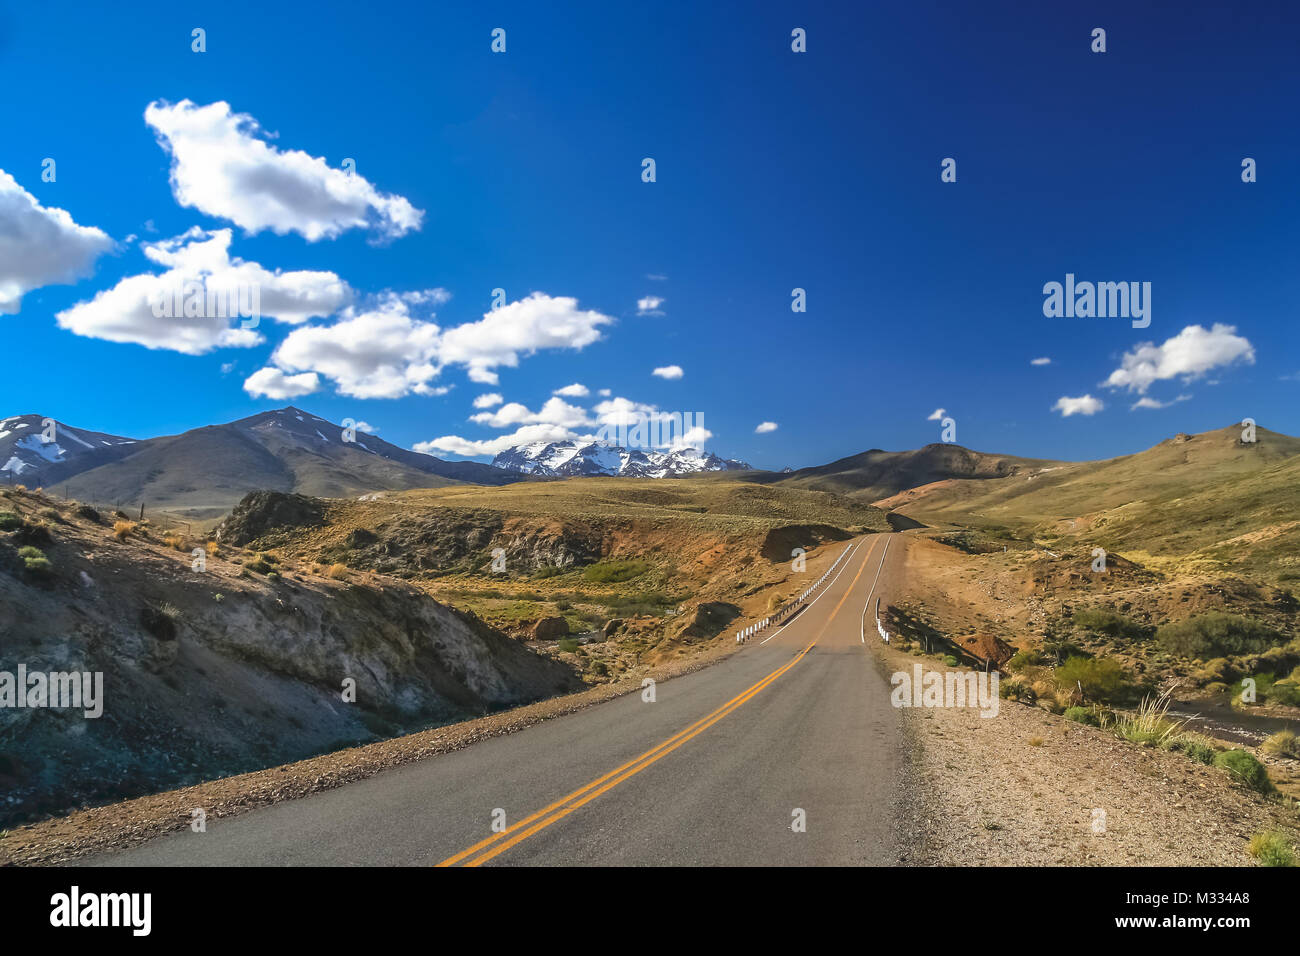 Famous Ruta 40 called also Ruta Quarenta passing through some impressive and strangely shaped mountains in Argentina, - Stock Image